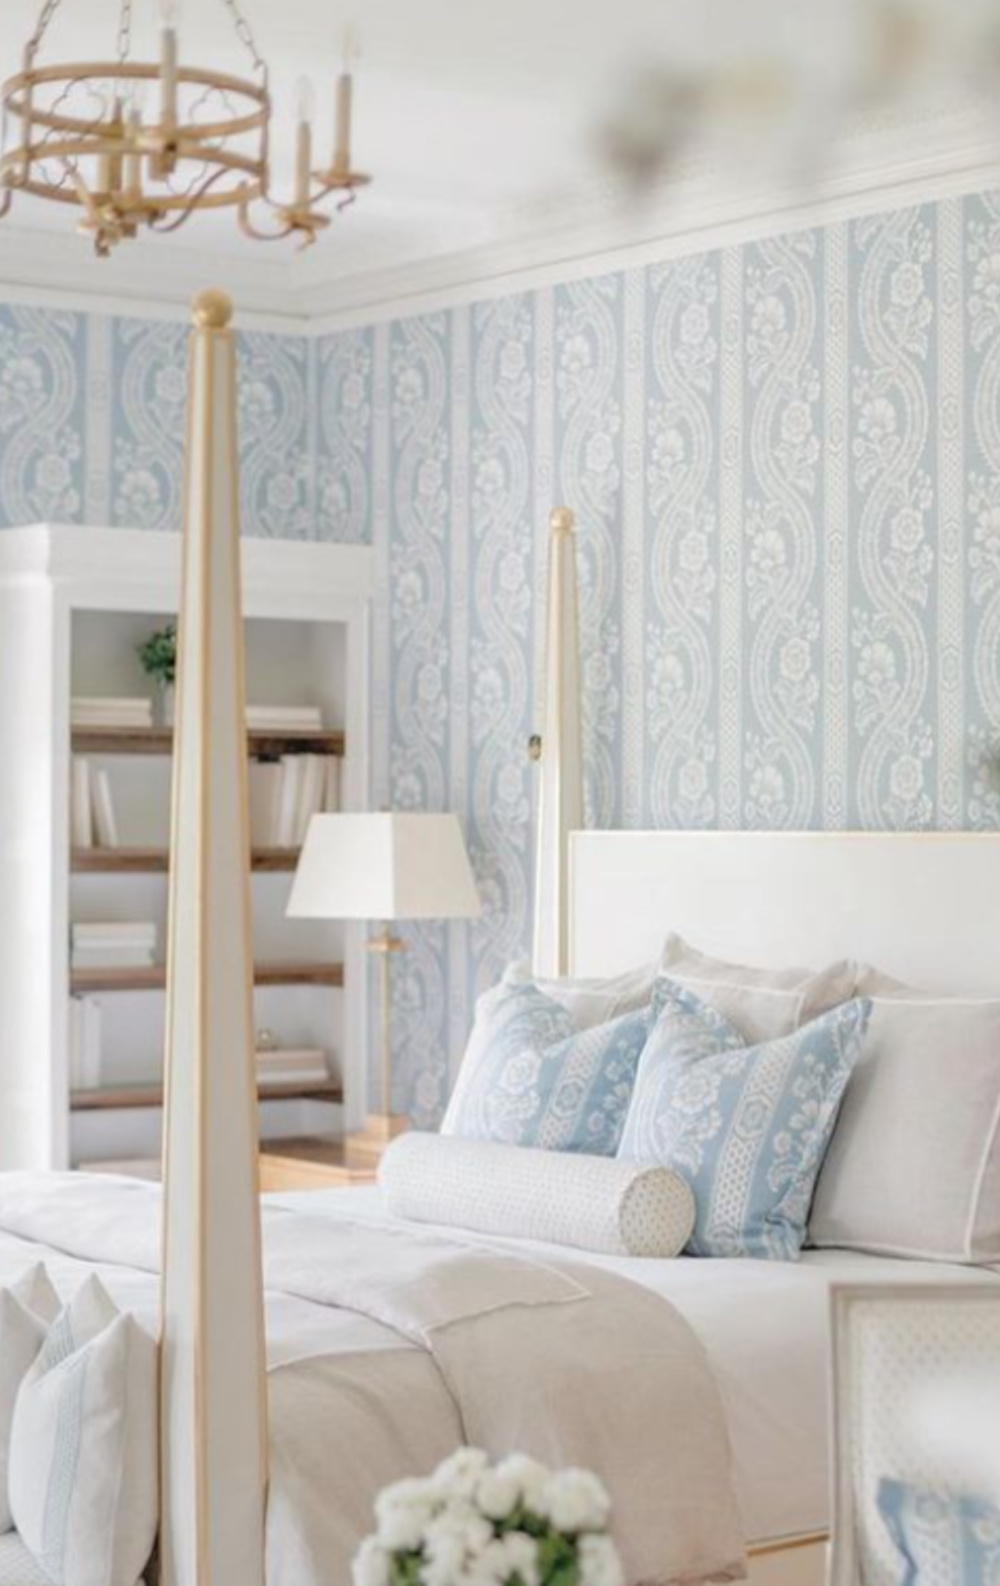 Timeless traditional interior design style in a blue wallpapered serene bedroom in Vermont by The Fox Group. #chambrayblue #bedroom #interiordesign